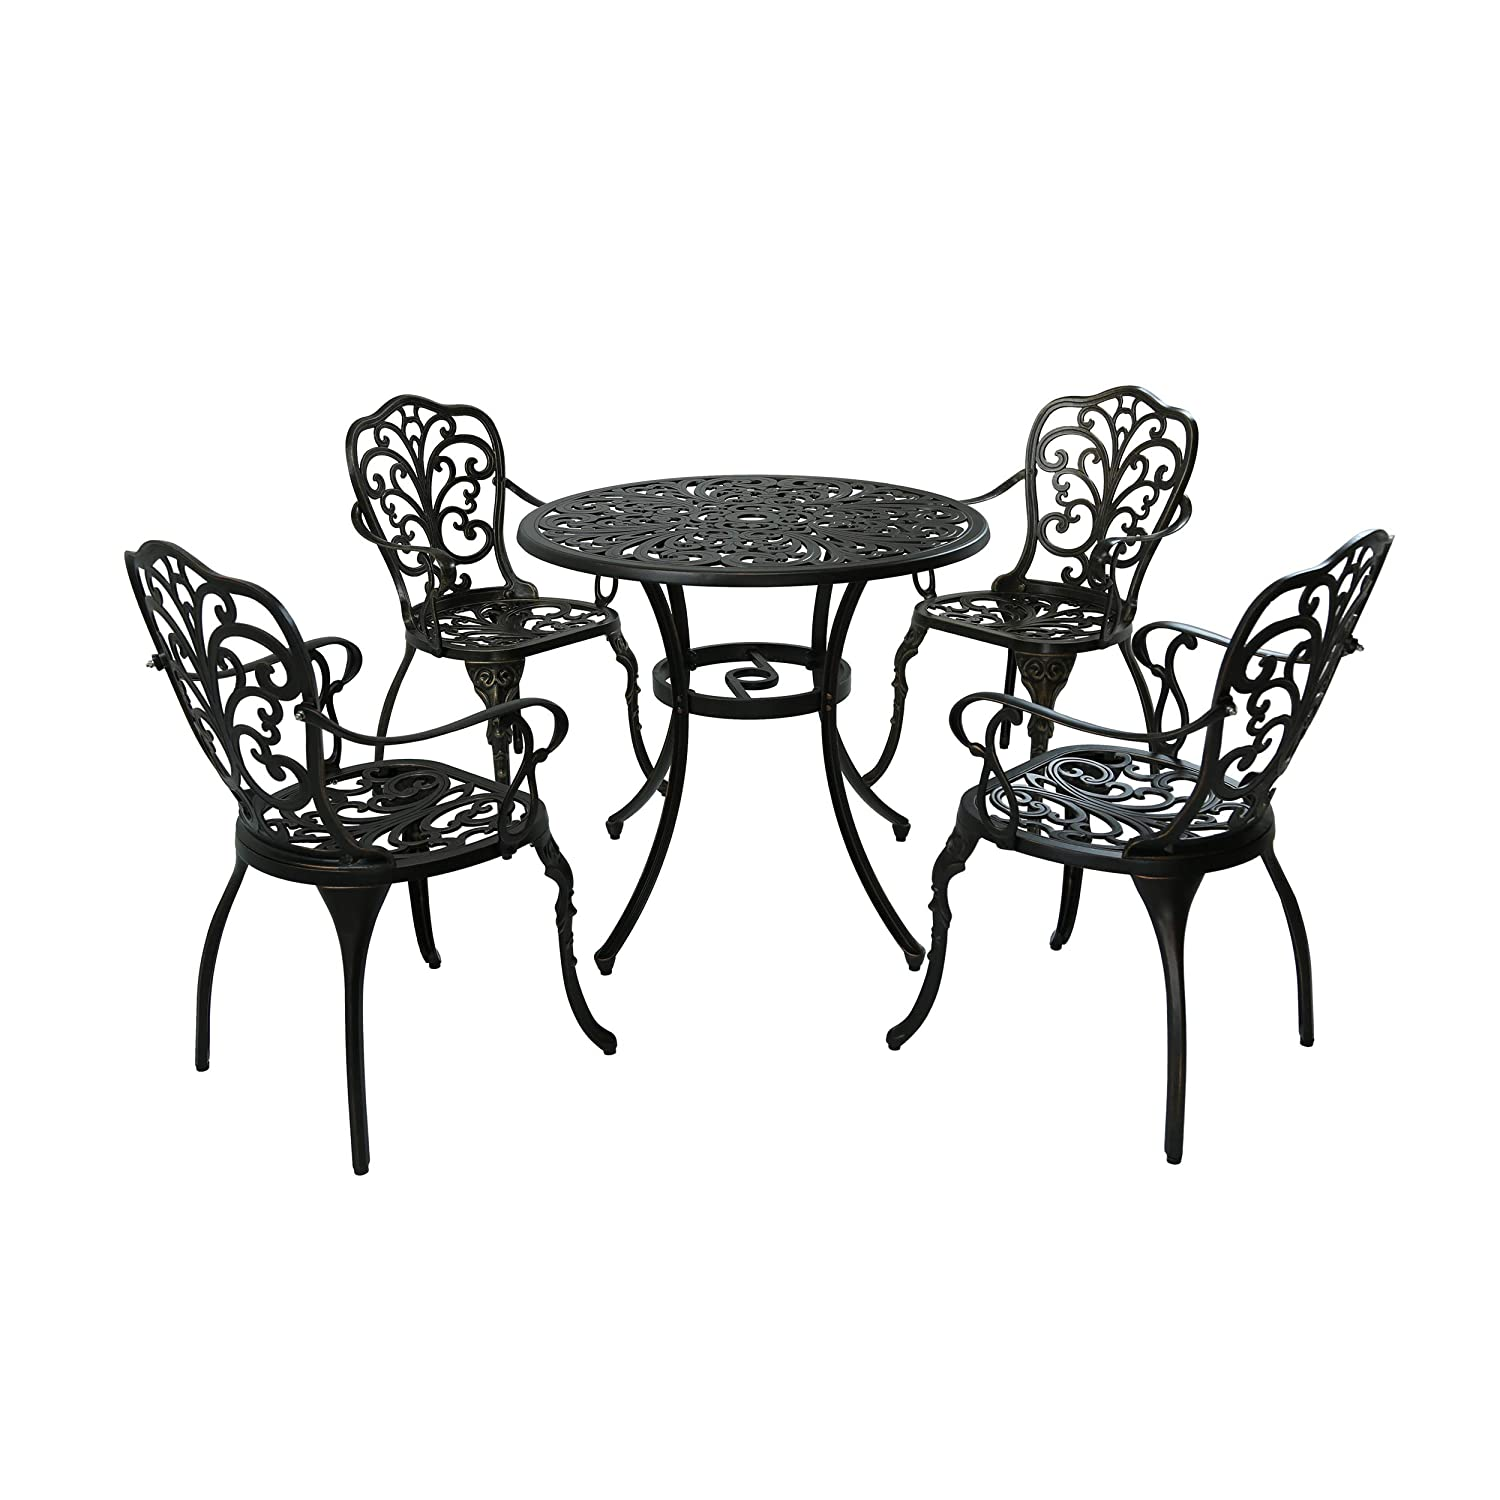 Christopher Knight Home 305416 Zona Outdoor 5 Piece Cast Aluminum Dining Set, Shiny Copper